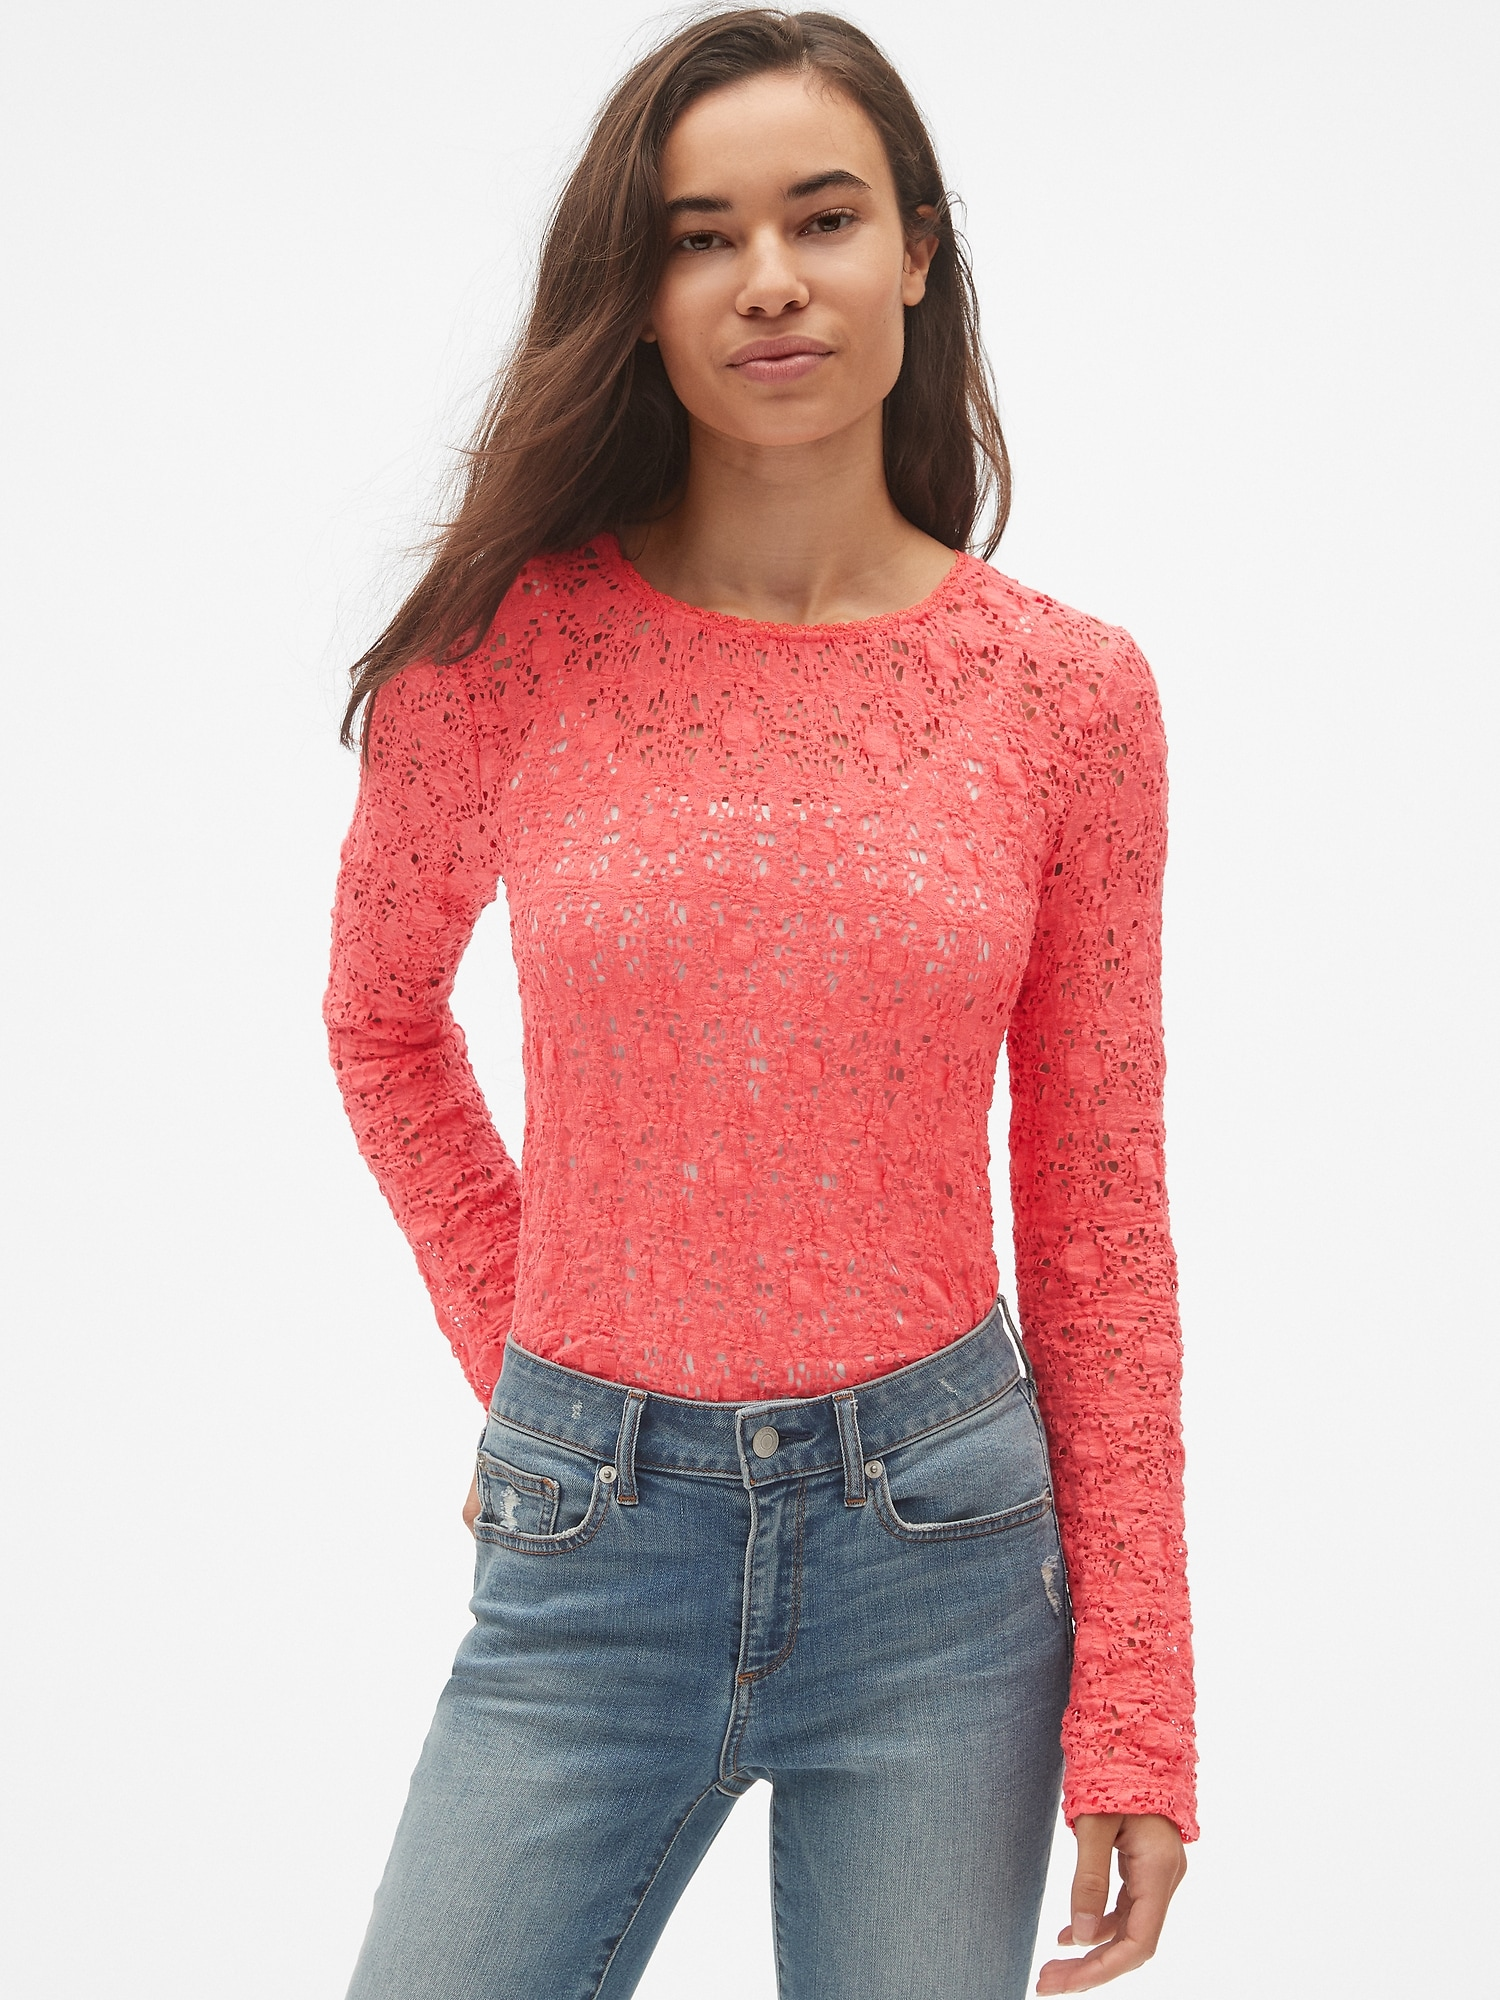 7b15d40c02227 Long Sleeve Crewneck Top in Pucker Lace